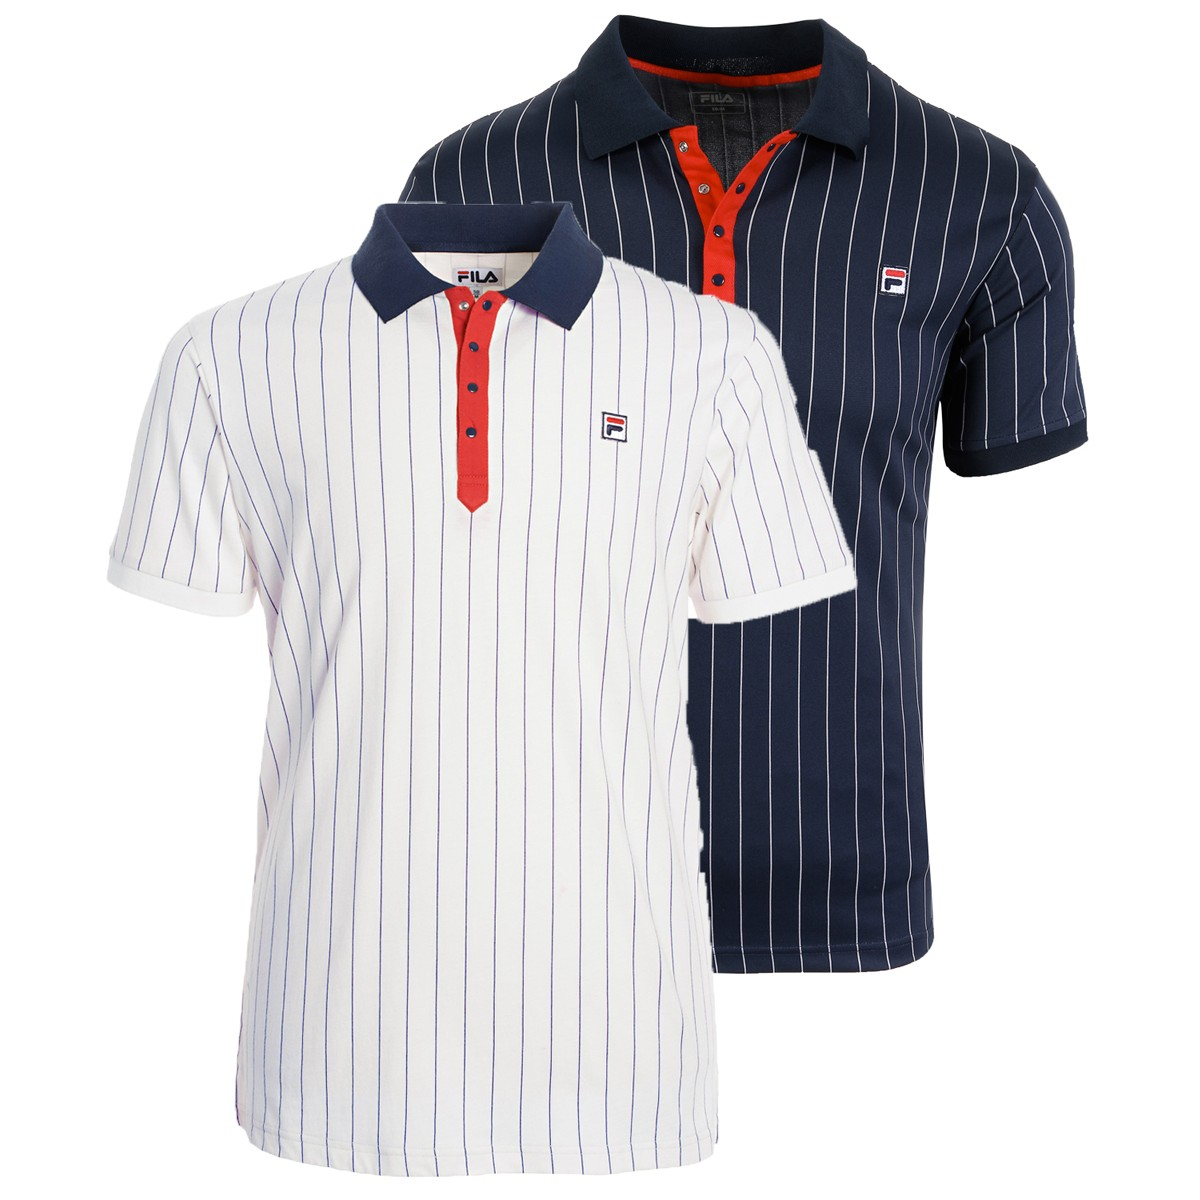 ad5980b1888 POLO FILA CLUB STRIPES 2016